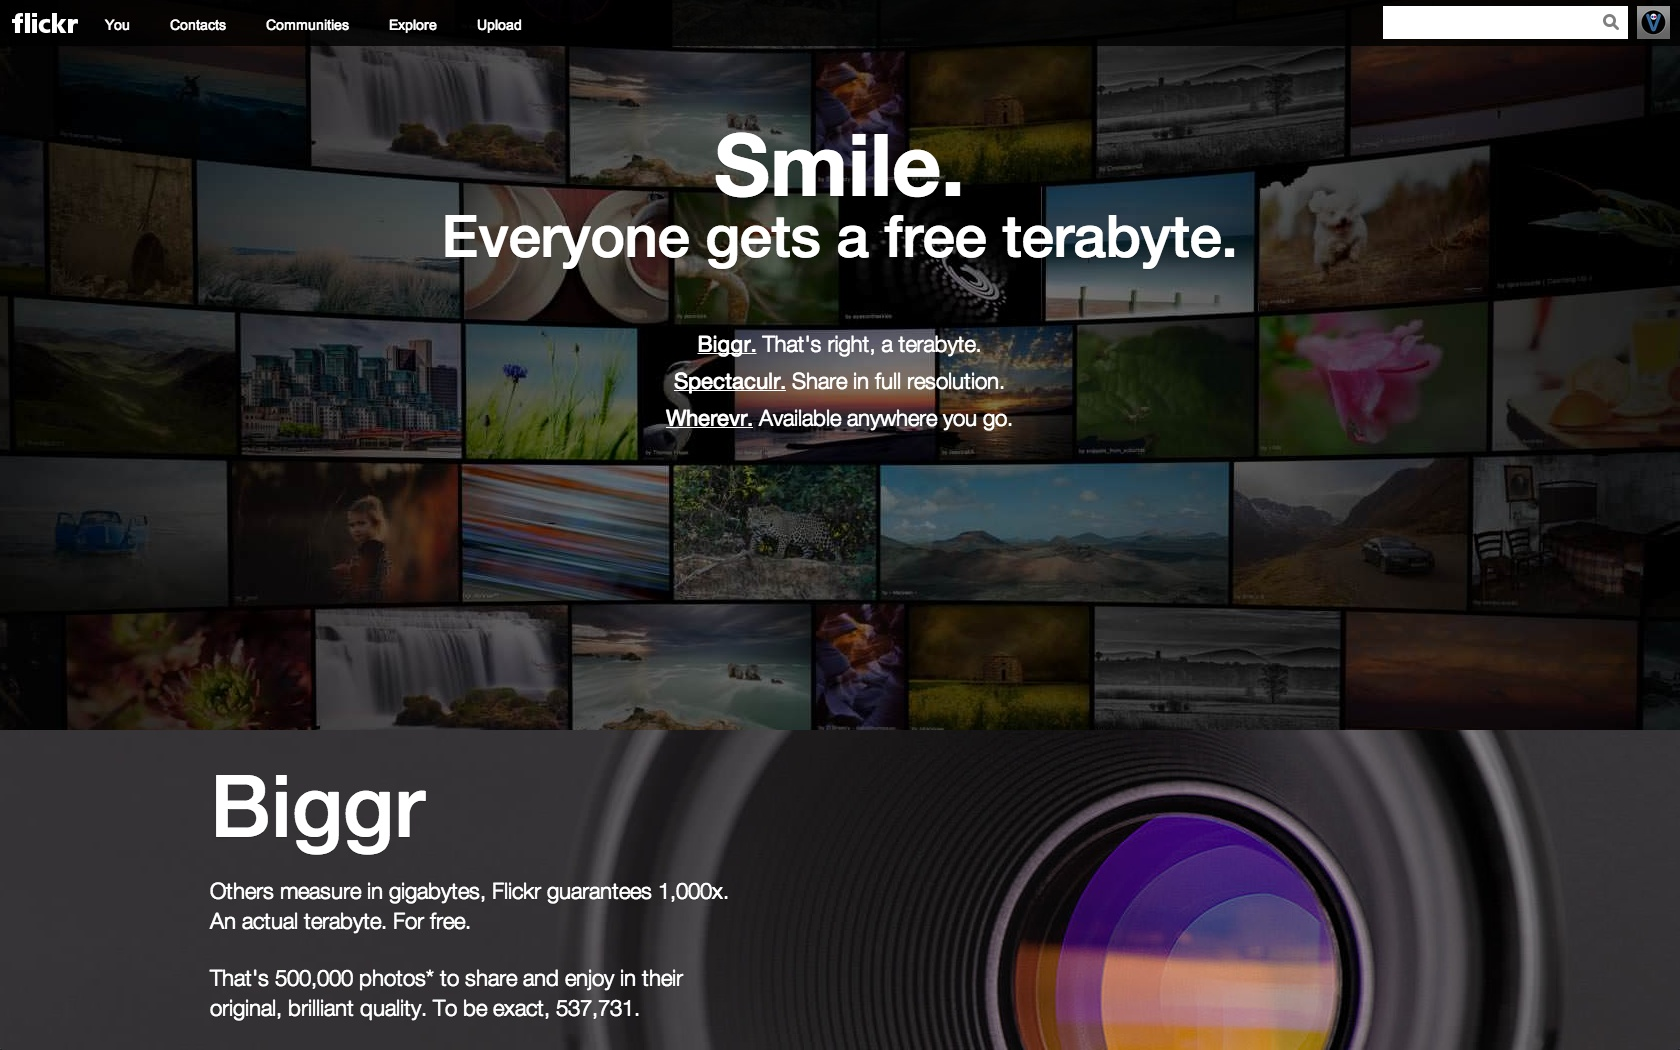 The New Flickr 20130520